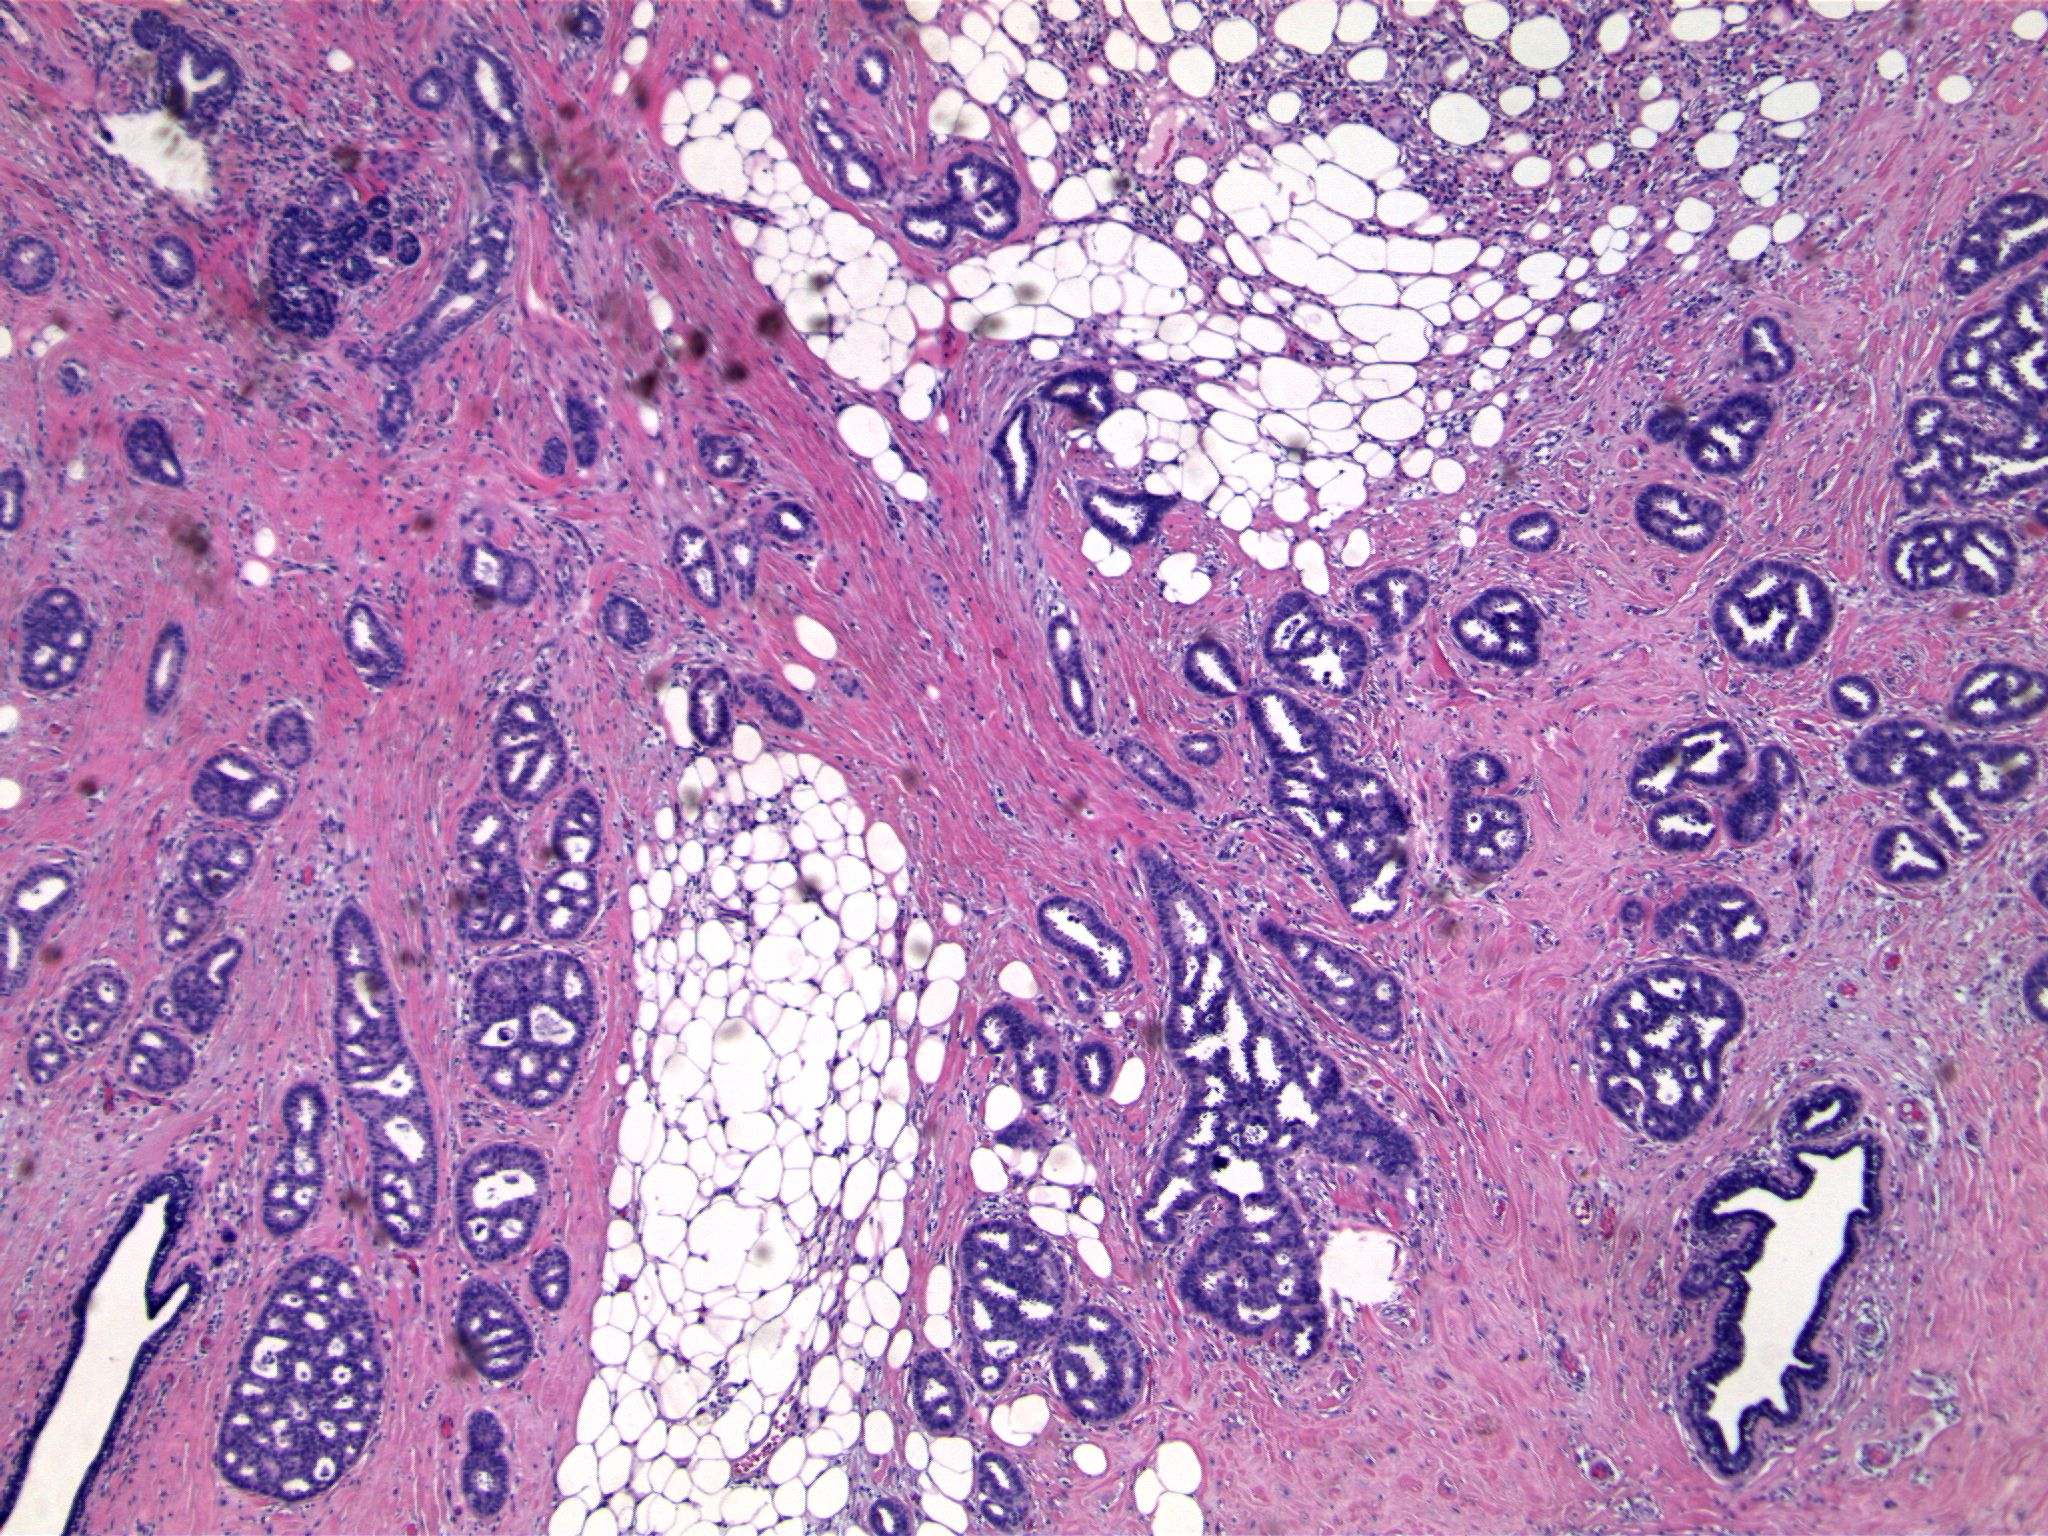 Image 4.   Diffusely infiltrating cribriform structures are present.  Note normal ducts (bottom left and bottom right), and previous biopsy site (upper right).  This pattern of infiltration is characteristic of invasive cribriform carcinoma